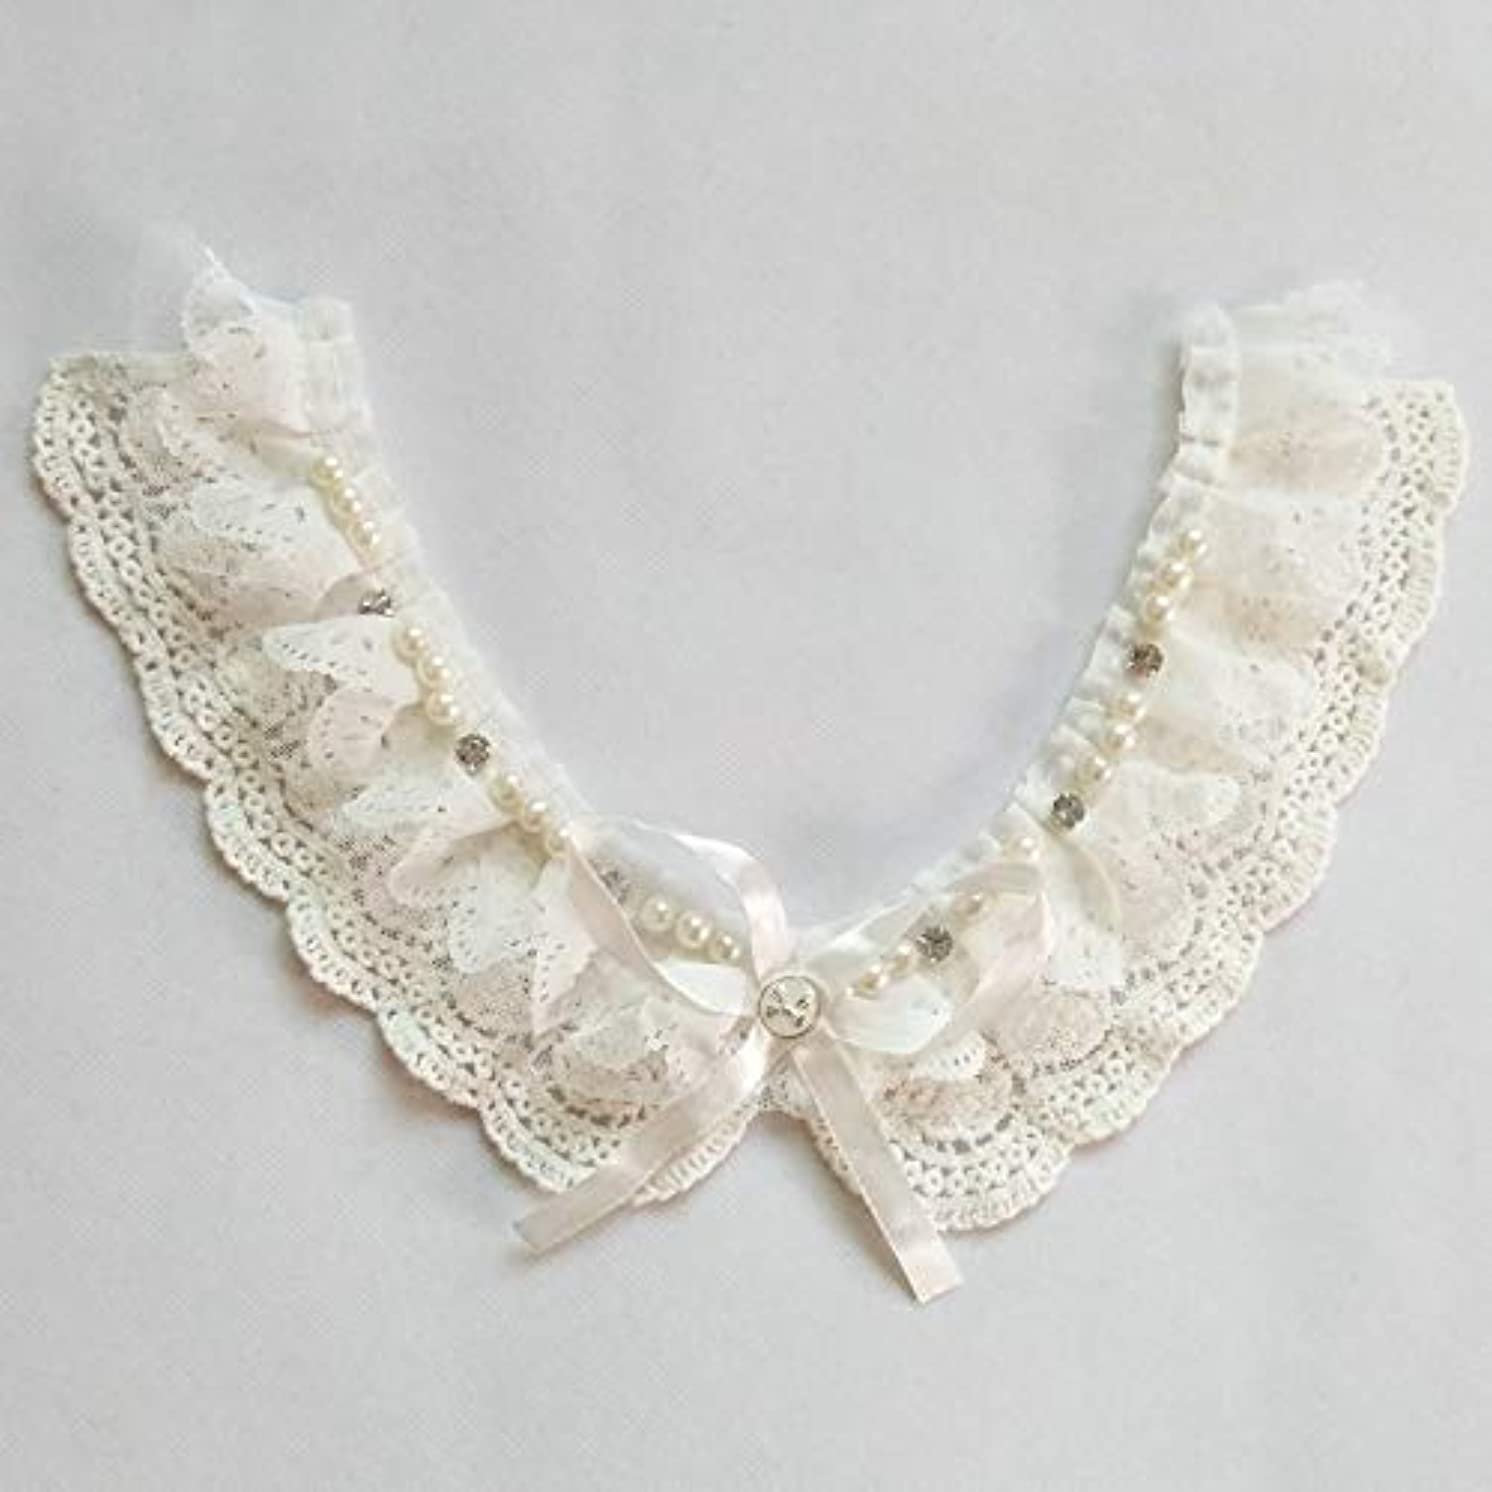 1 Pcs Garment Accessories/Pure Cotton Lace/Diamond Crystal Pearls Shirt Collar/Bow Tie Pearl Collar